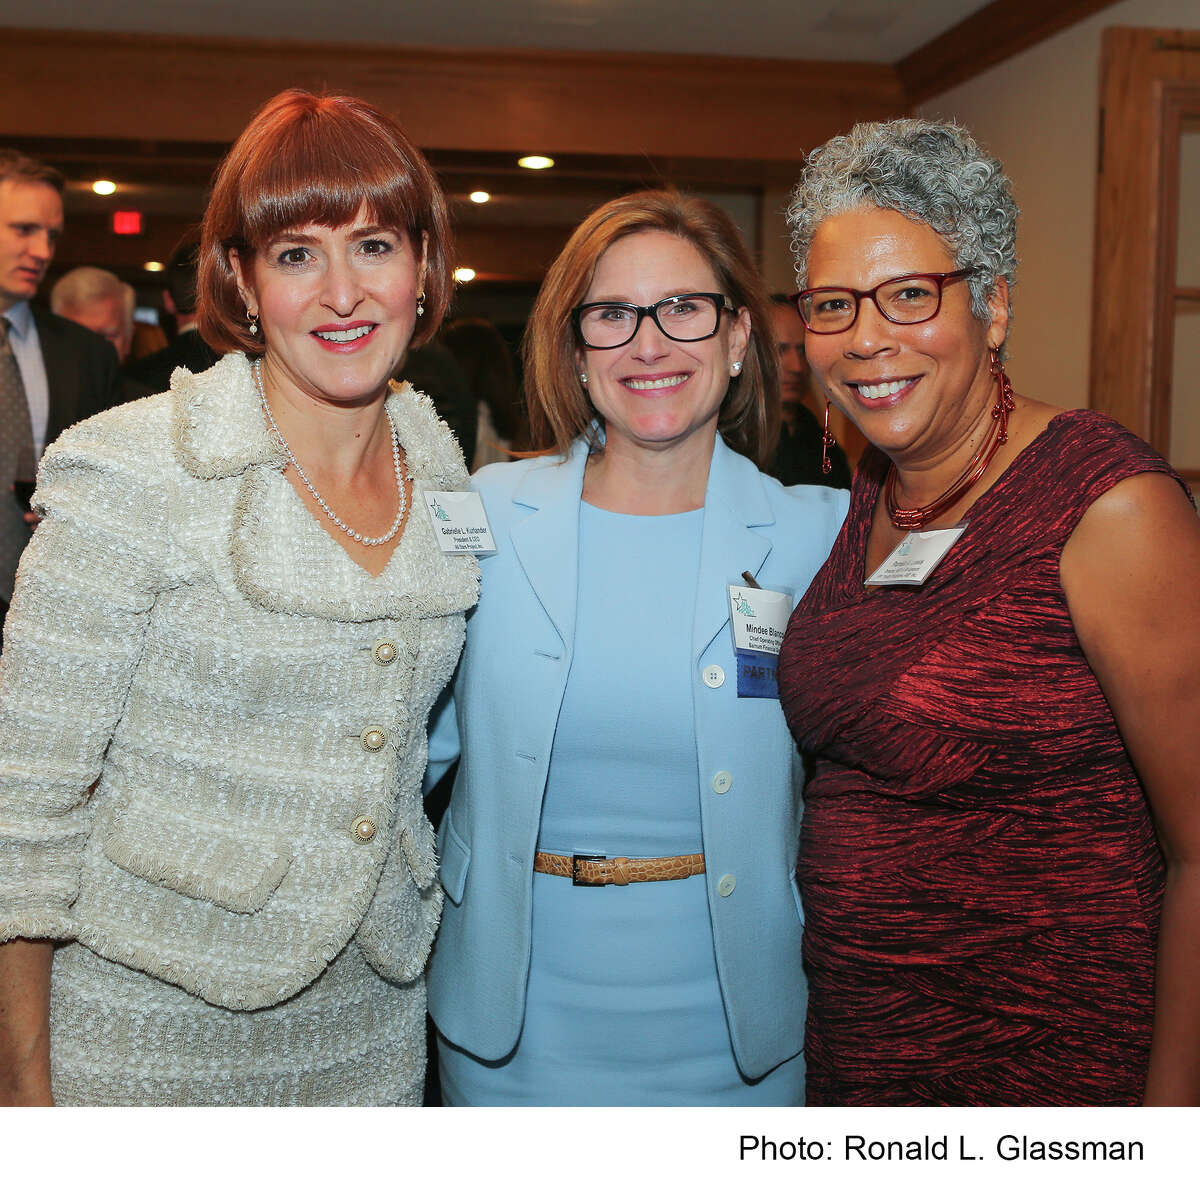 (Left to Right) Gabrielle L. Kurlander (President & Chief Executive Officer, All Stars Project, Inc.), Mindee Blanco (Chief Operating Officer, Barnum Financial Group), and Pamela A. Lewis (Director, All Stars Project of Bridgeport and Vice President/Youth Programs, All Stars Project, Inc.) November 7, 2016 at